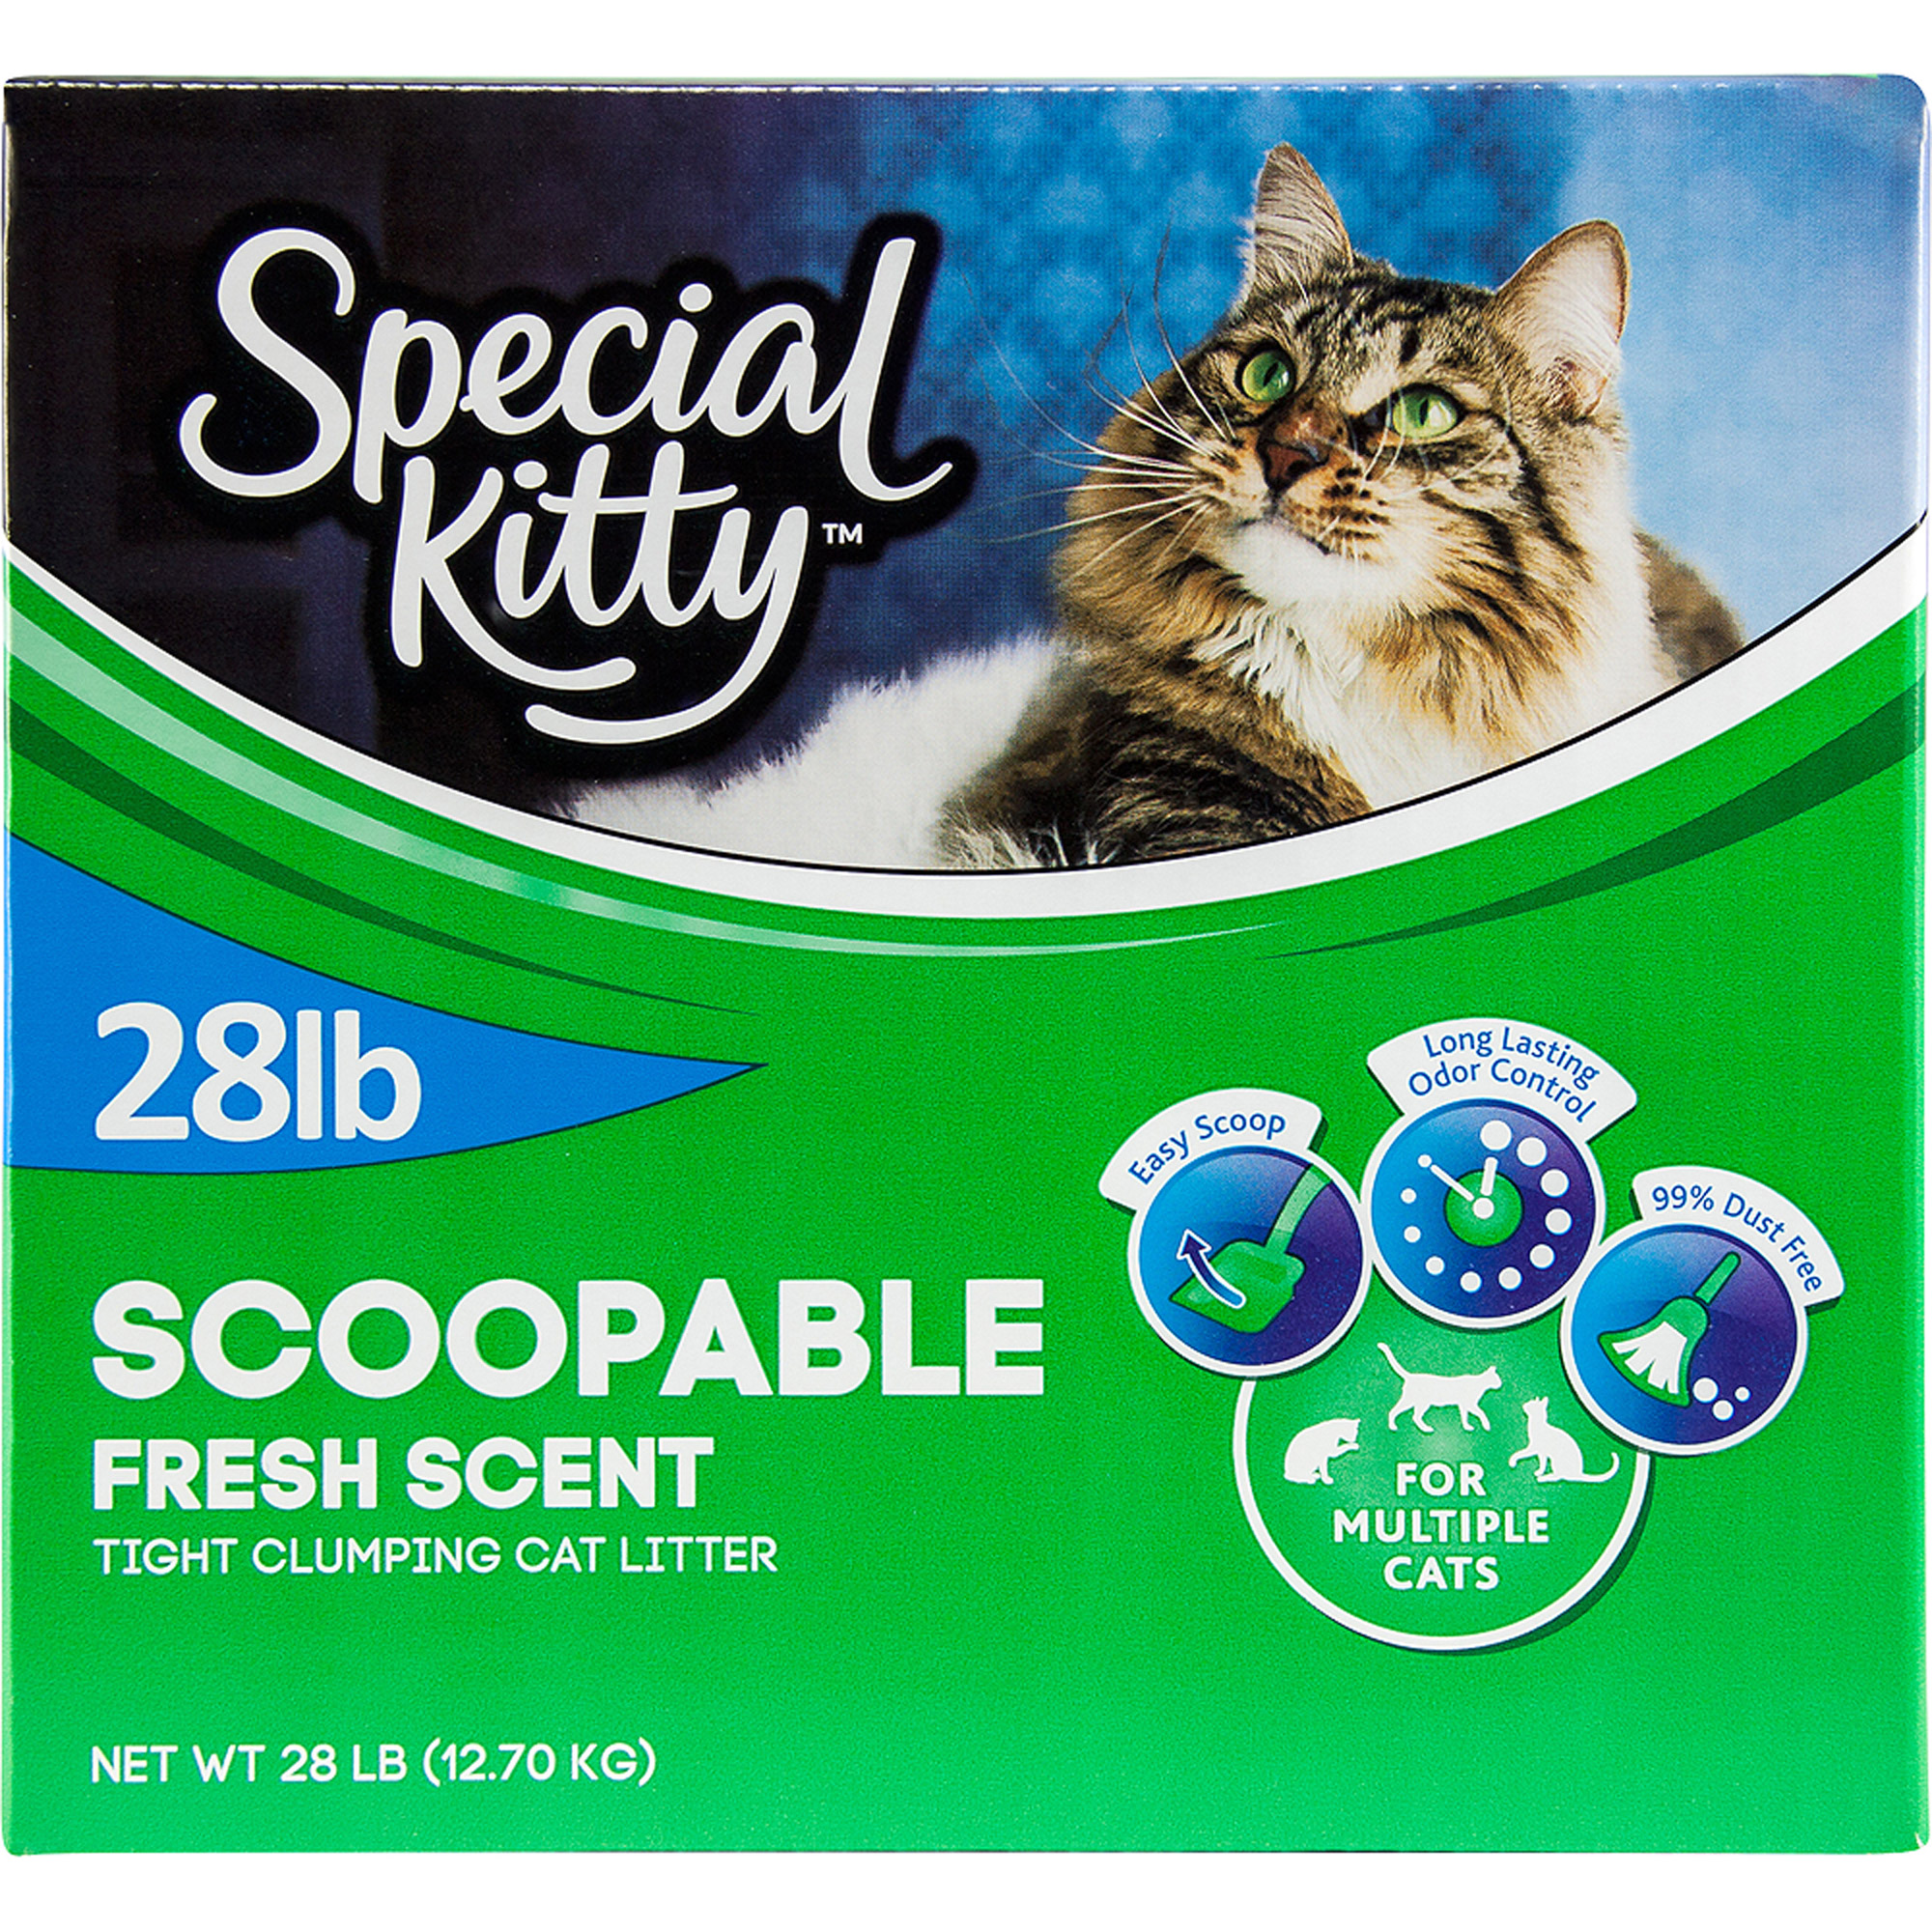 Special Kitty Scoopable Tight Clumbing Cat Litter, Fresh Scent, 28 lb